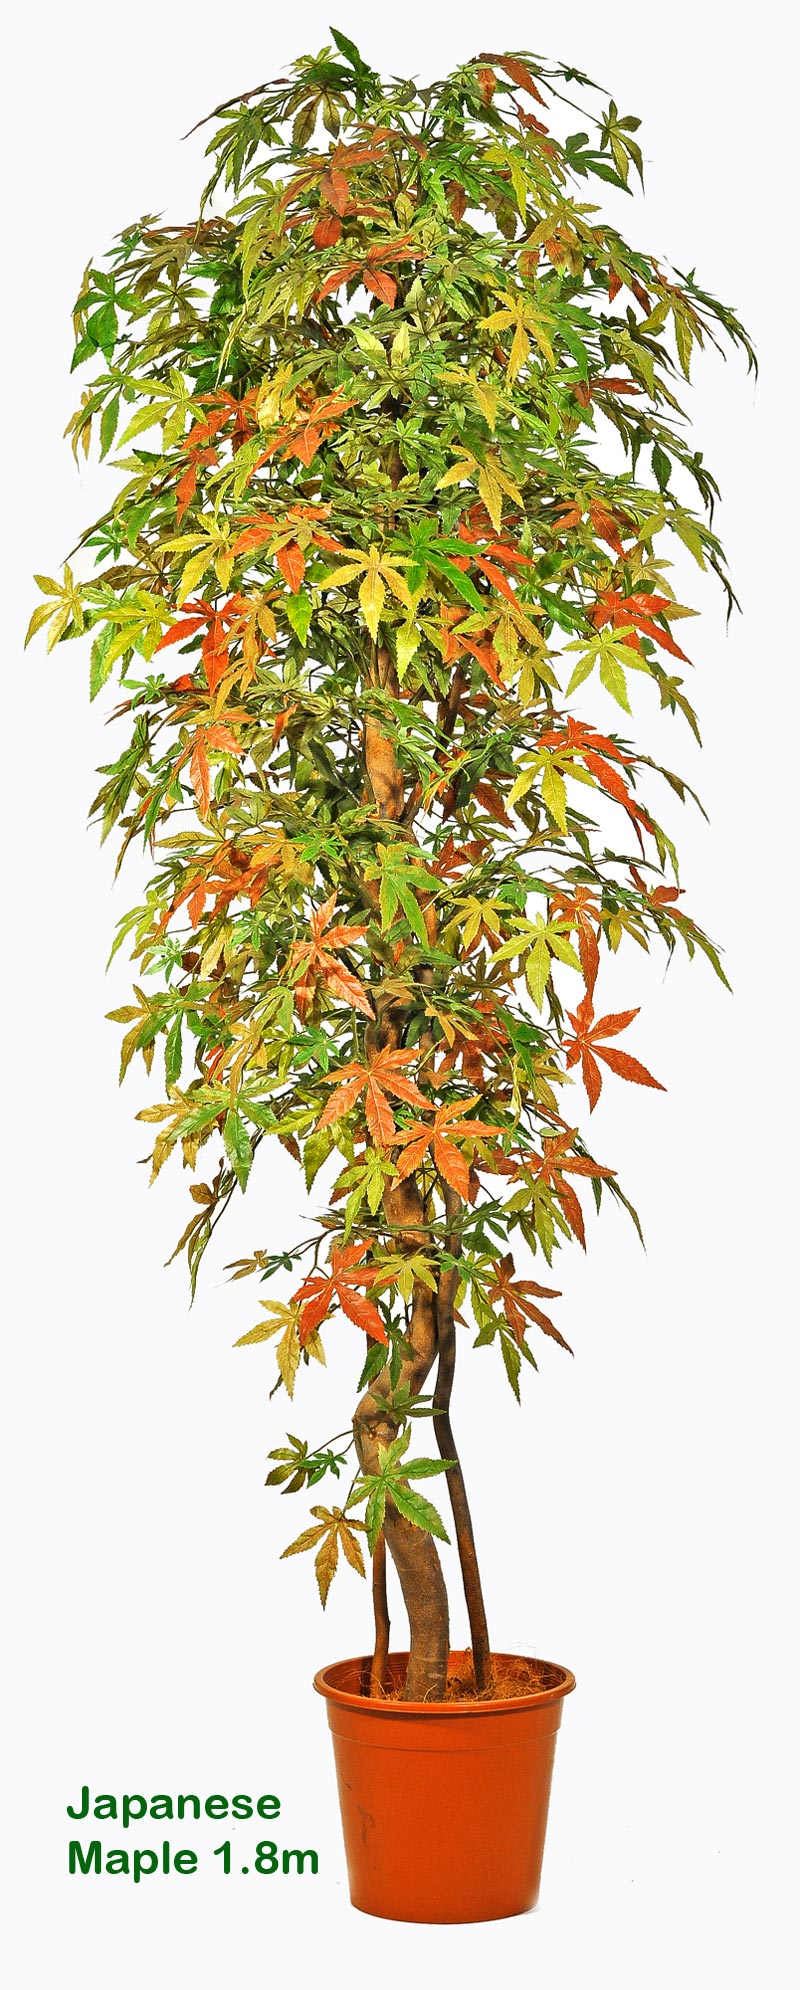 Articial Plants - Japanese Maple Trees 1.8M